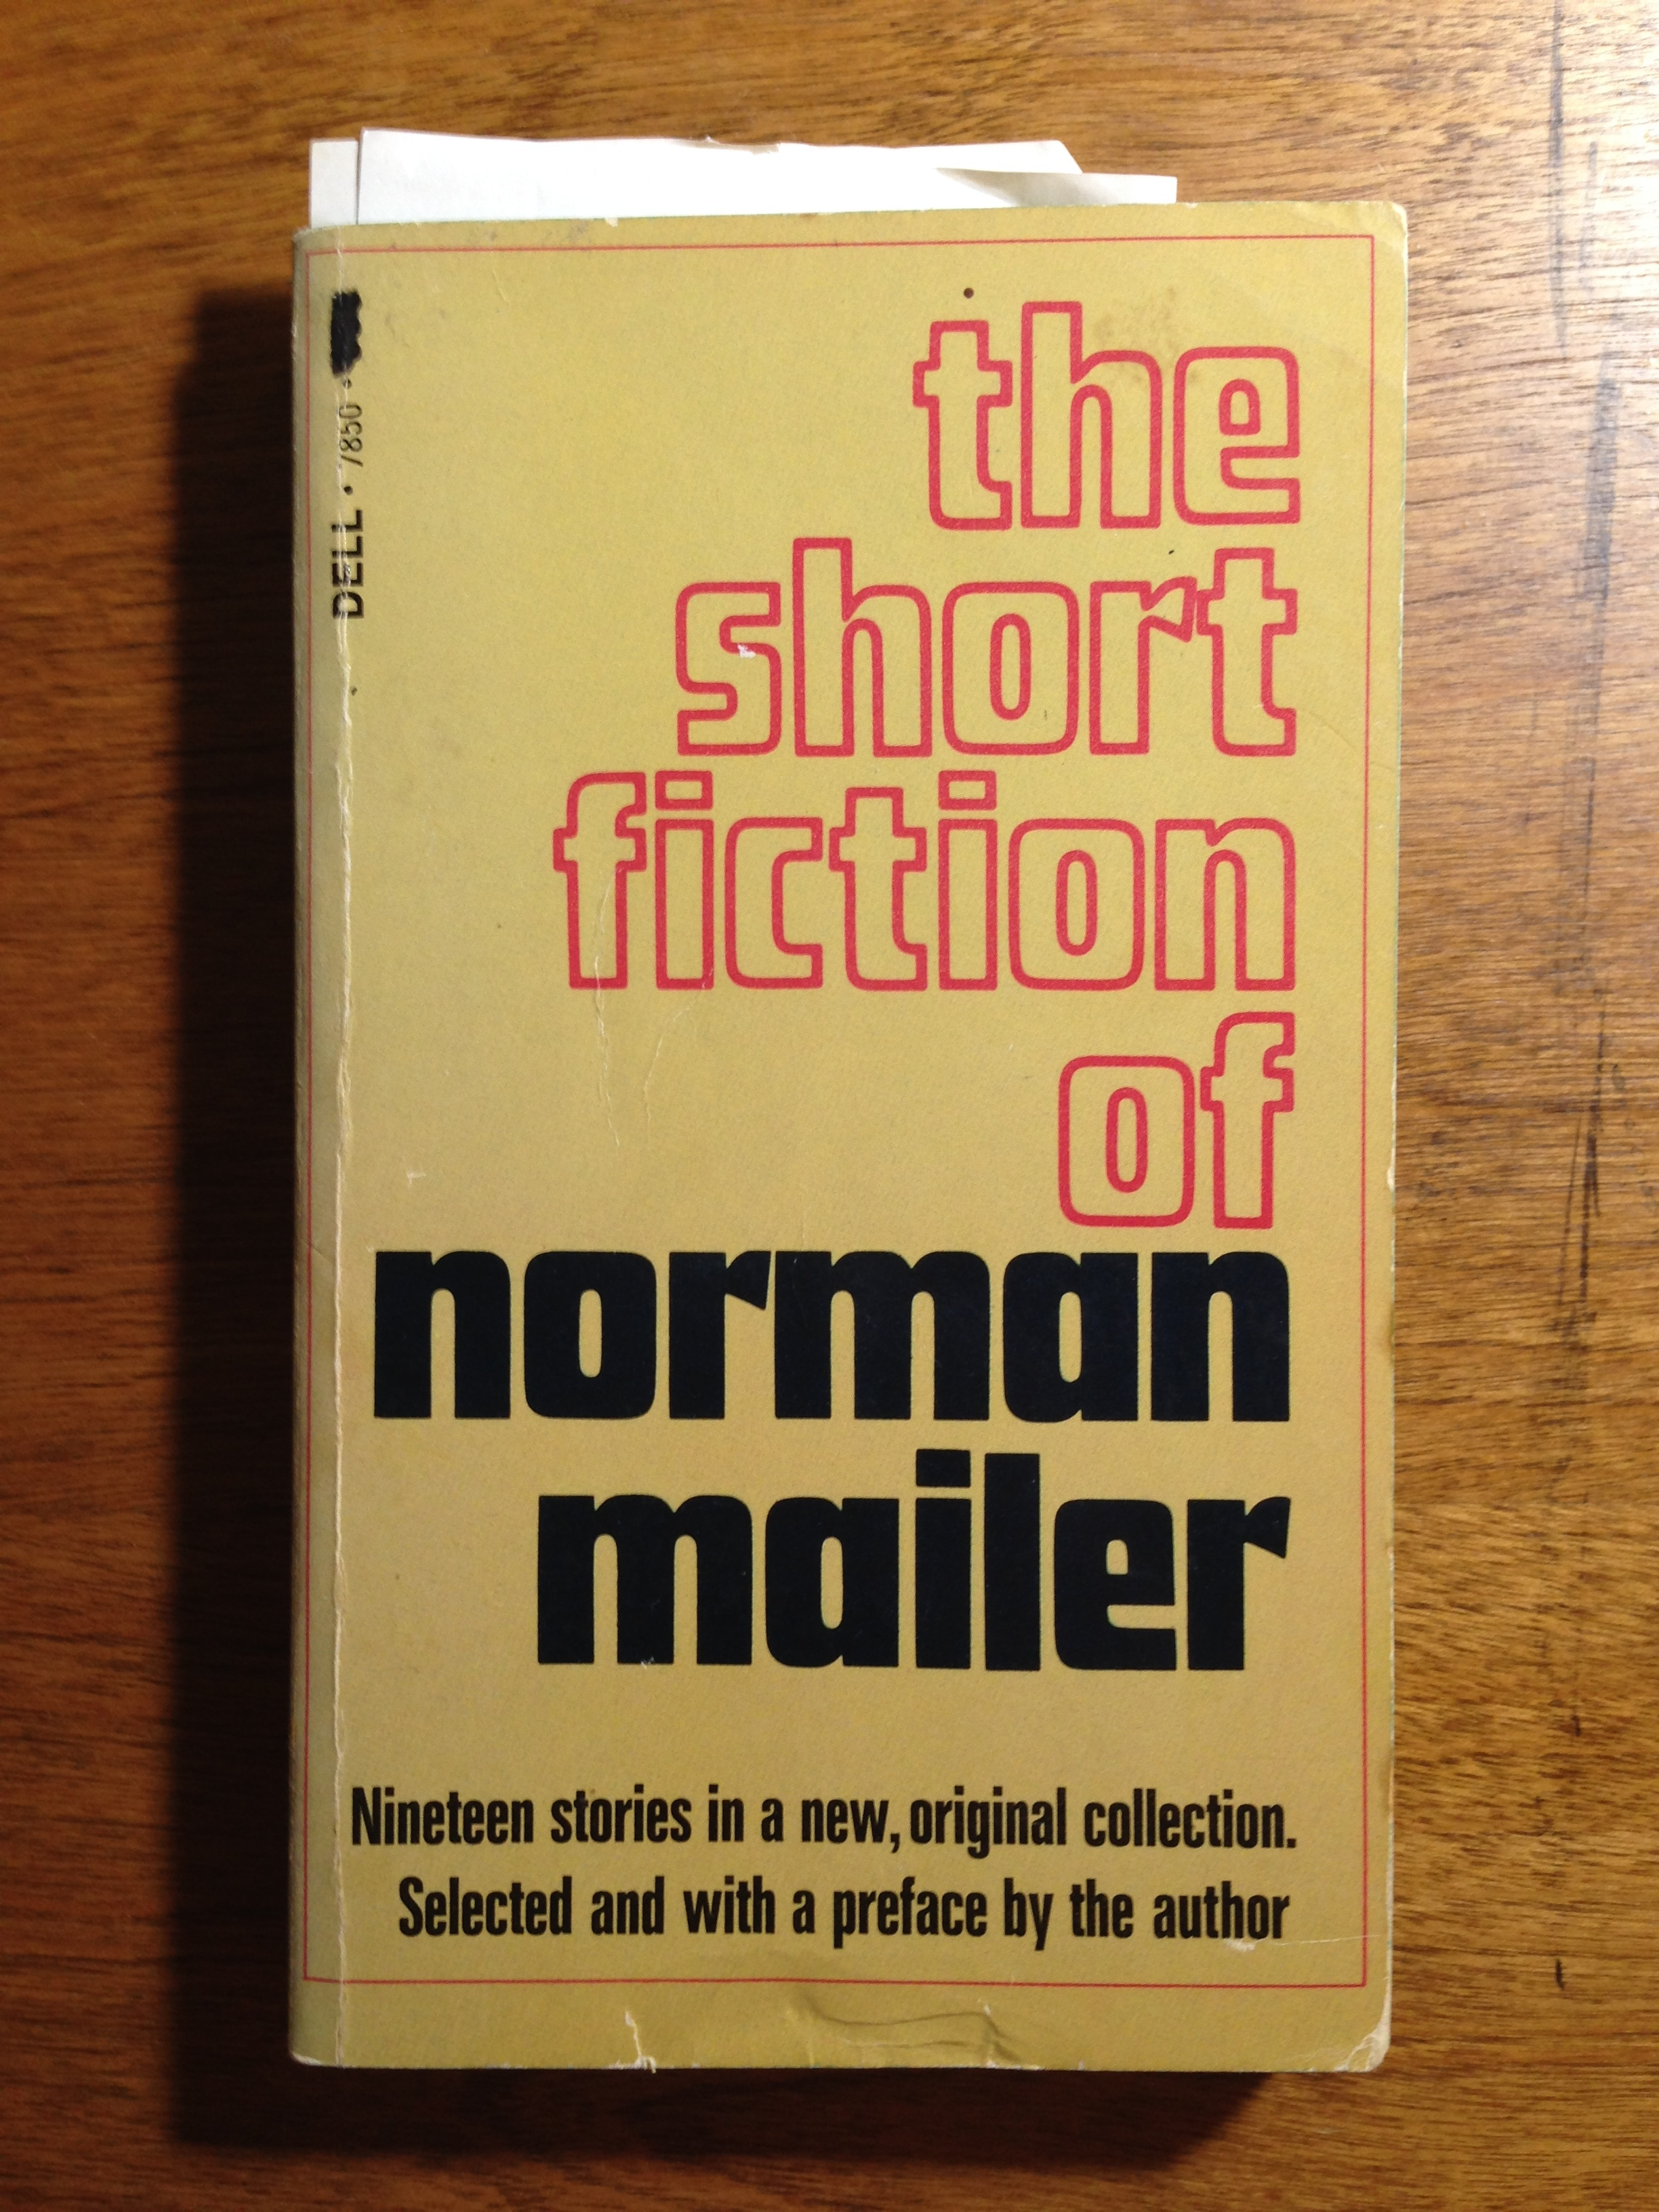 mailer_theshortfictionofnormanmailer.JPG